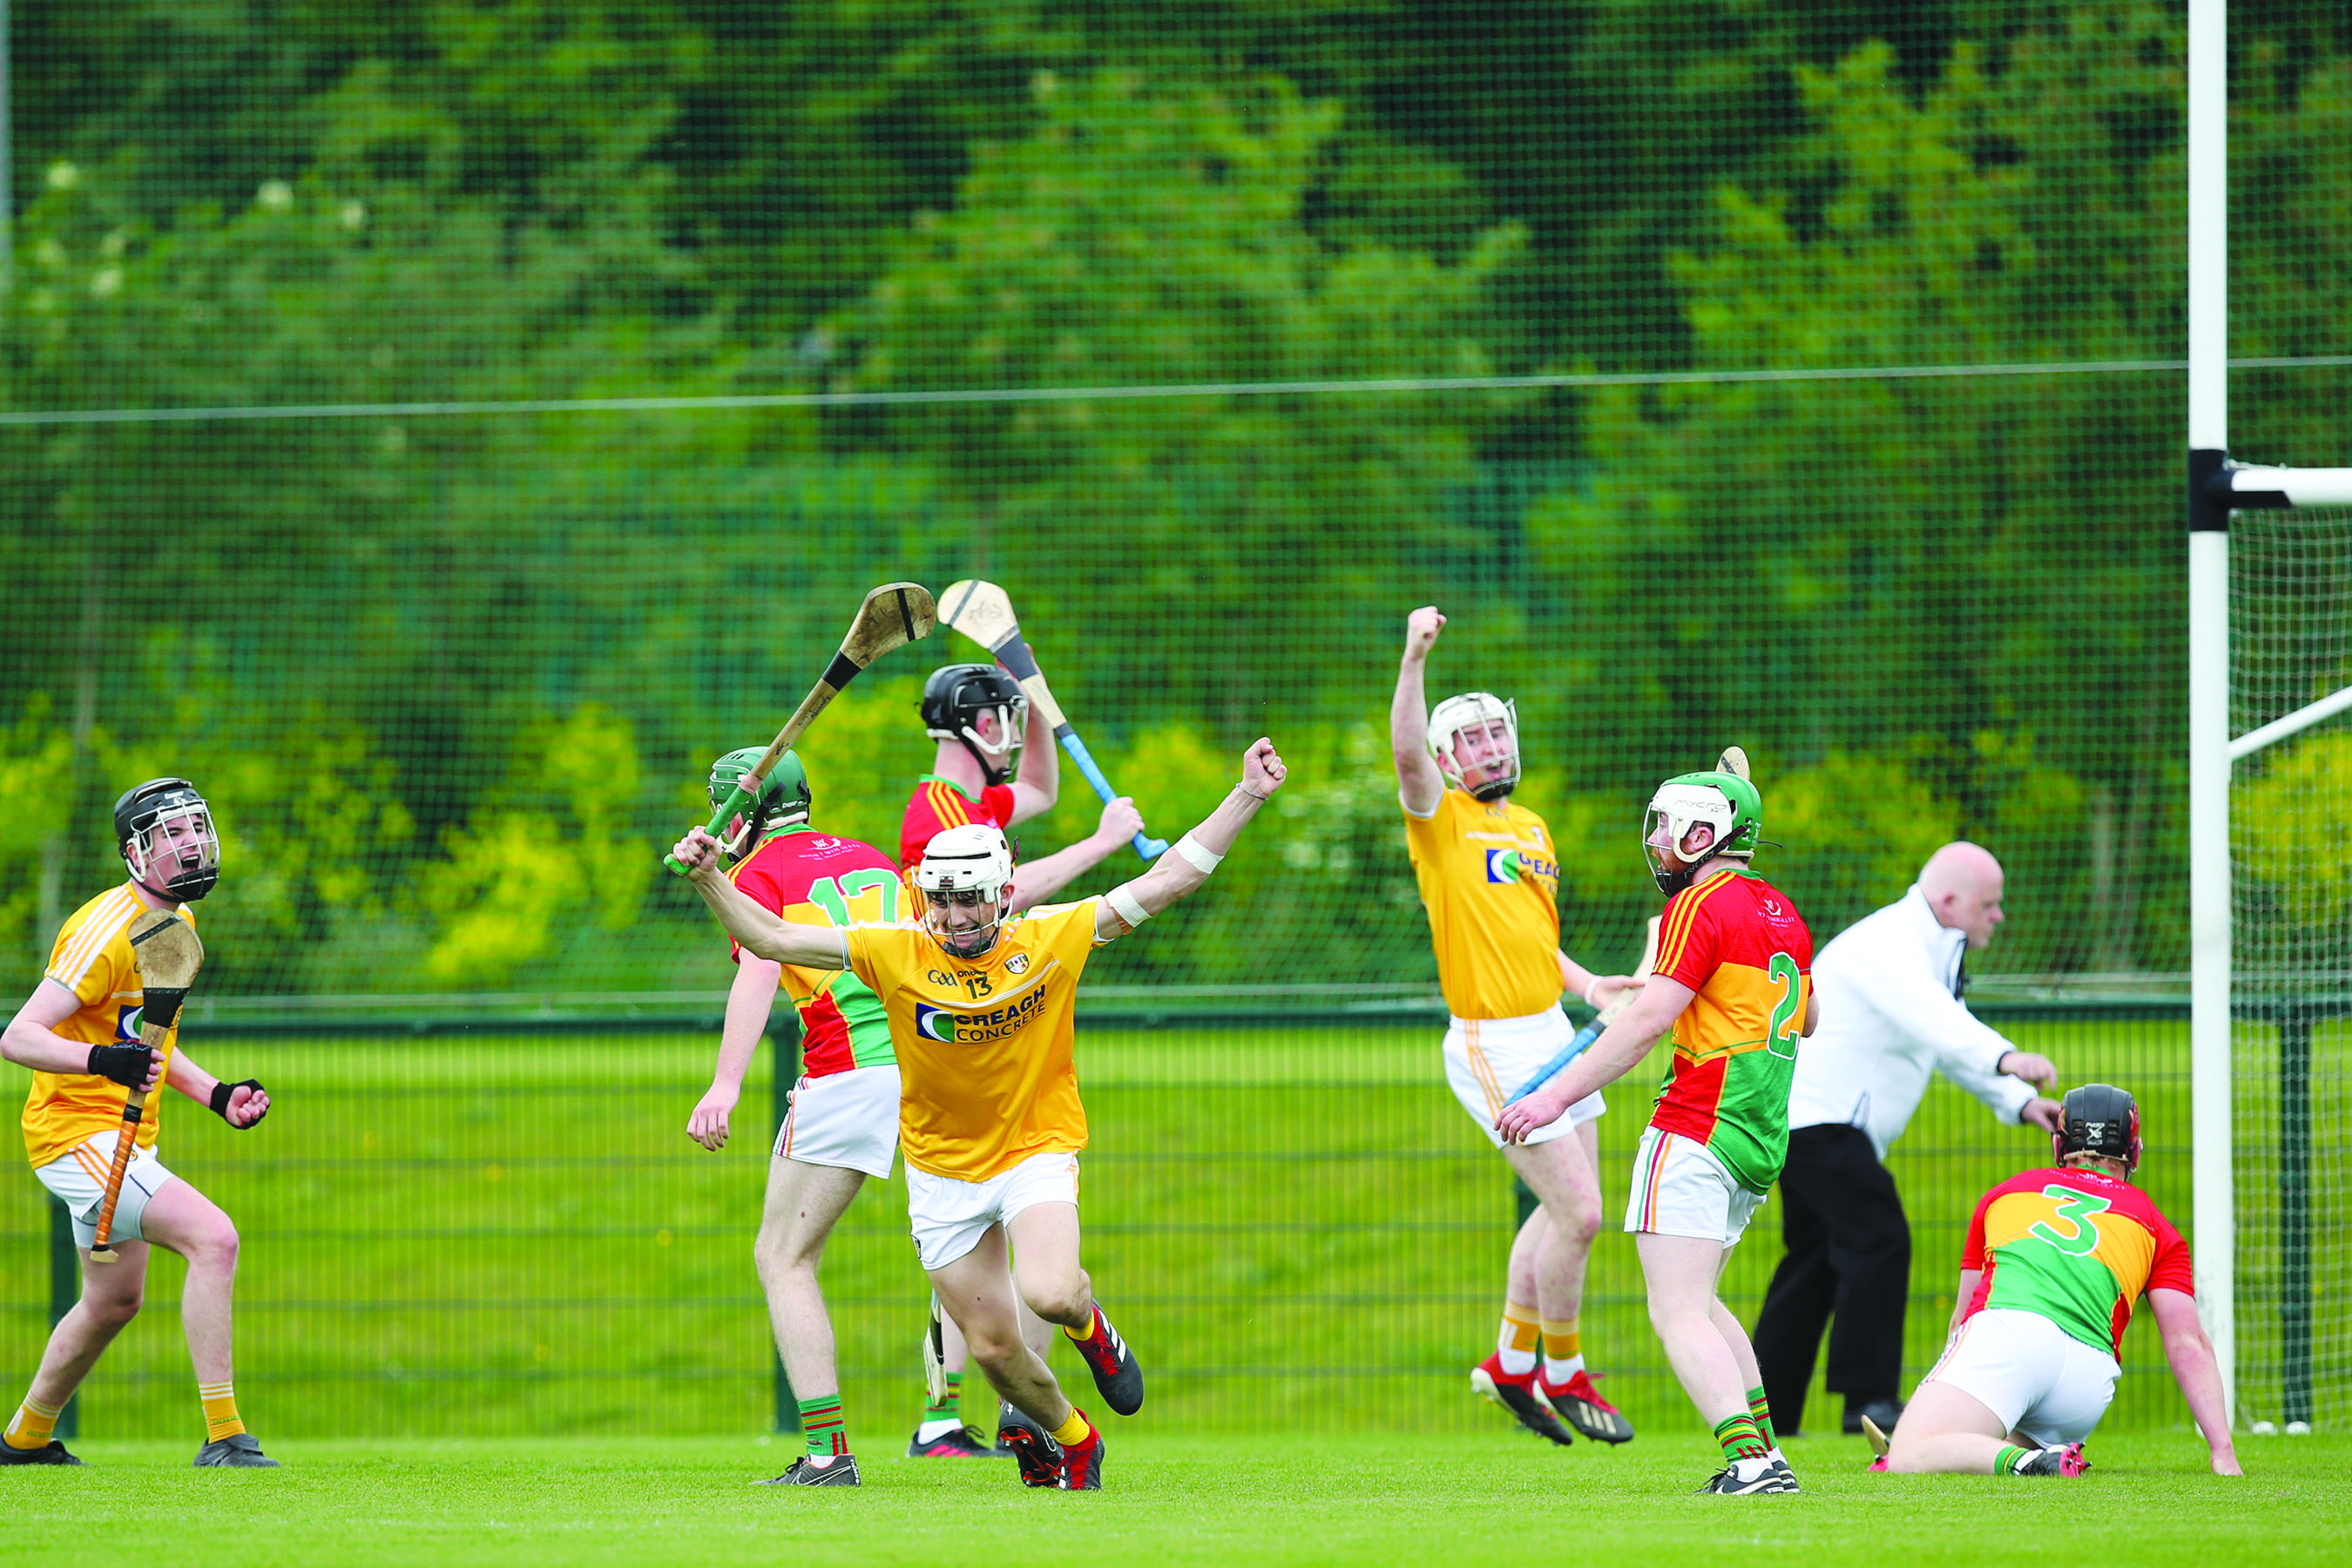 Despite playing well, Antrim ultimately lost out to Carlow in last year's Leinster U20 Championship after extra-time